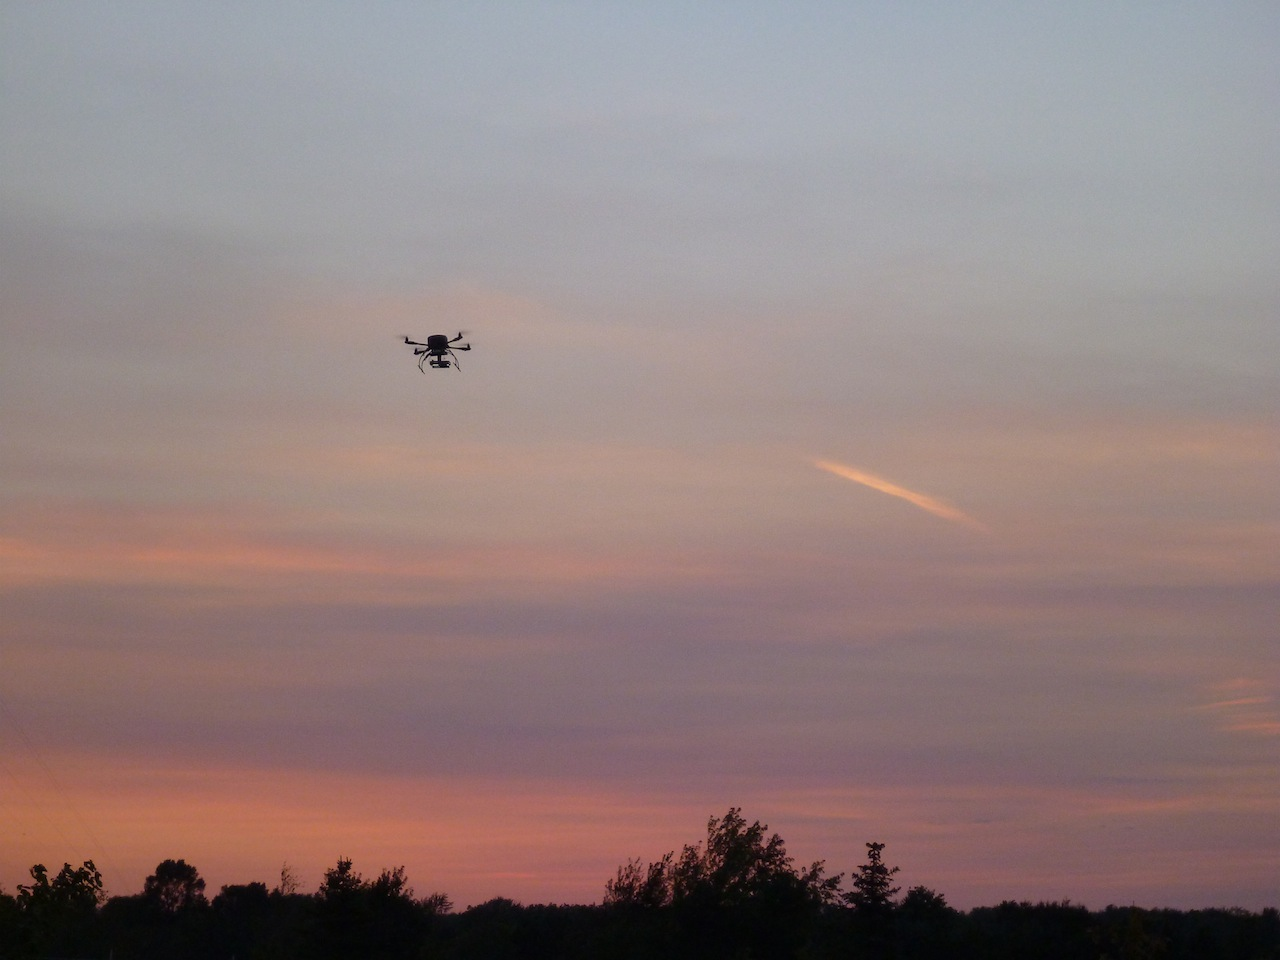 David's Quadcopter During Sunset